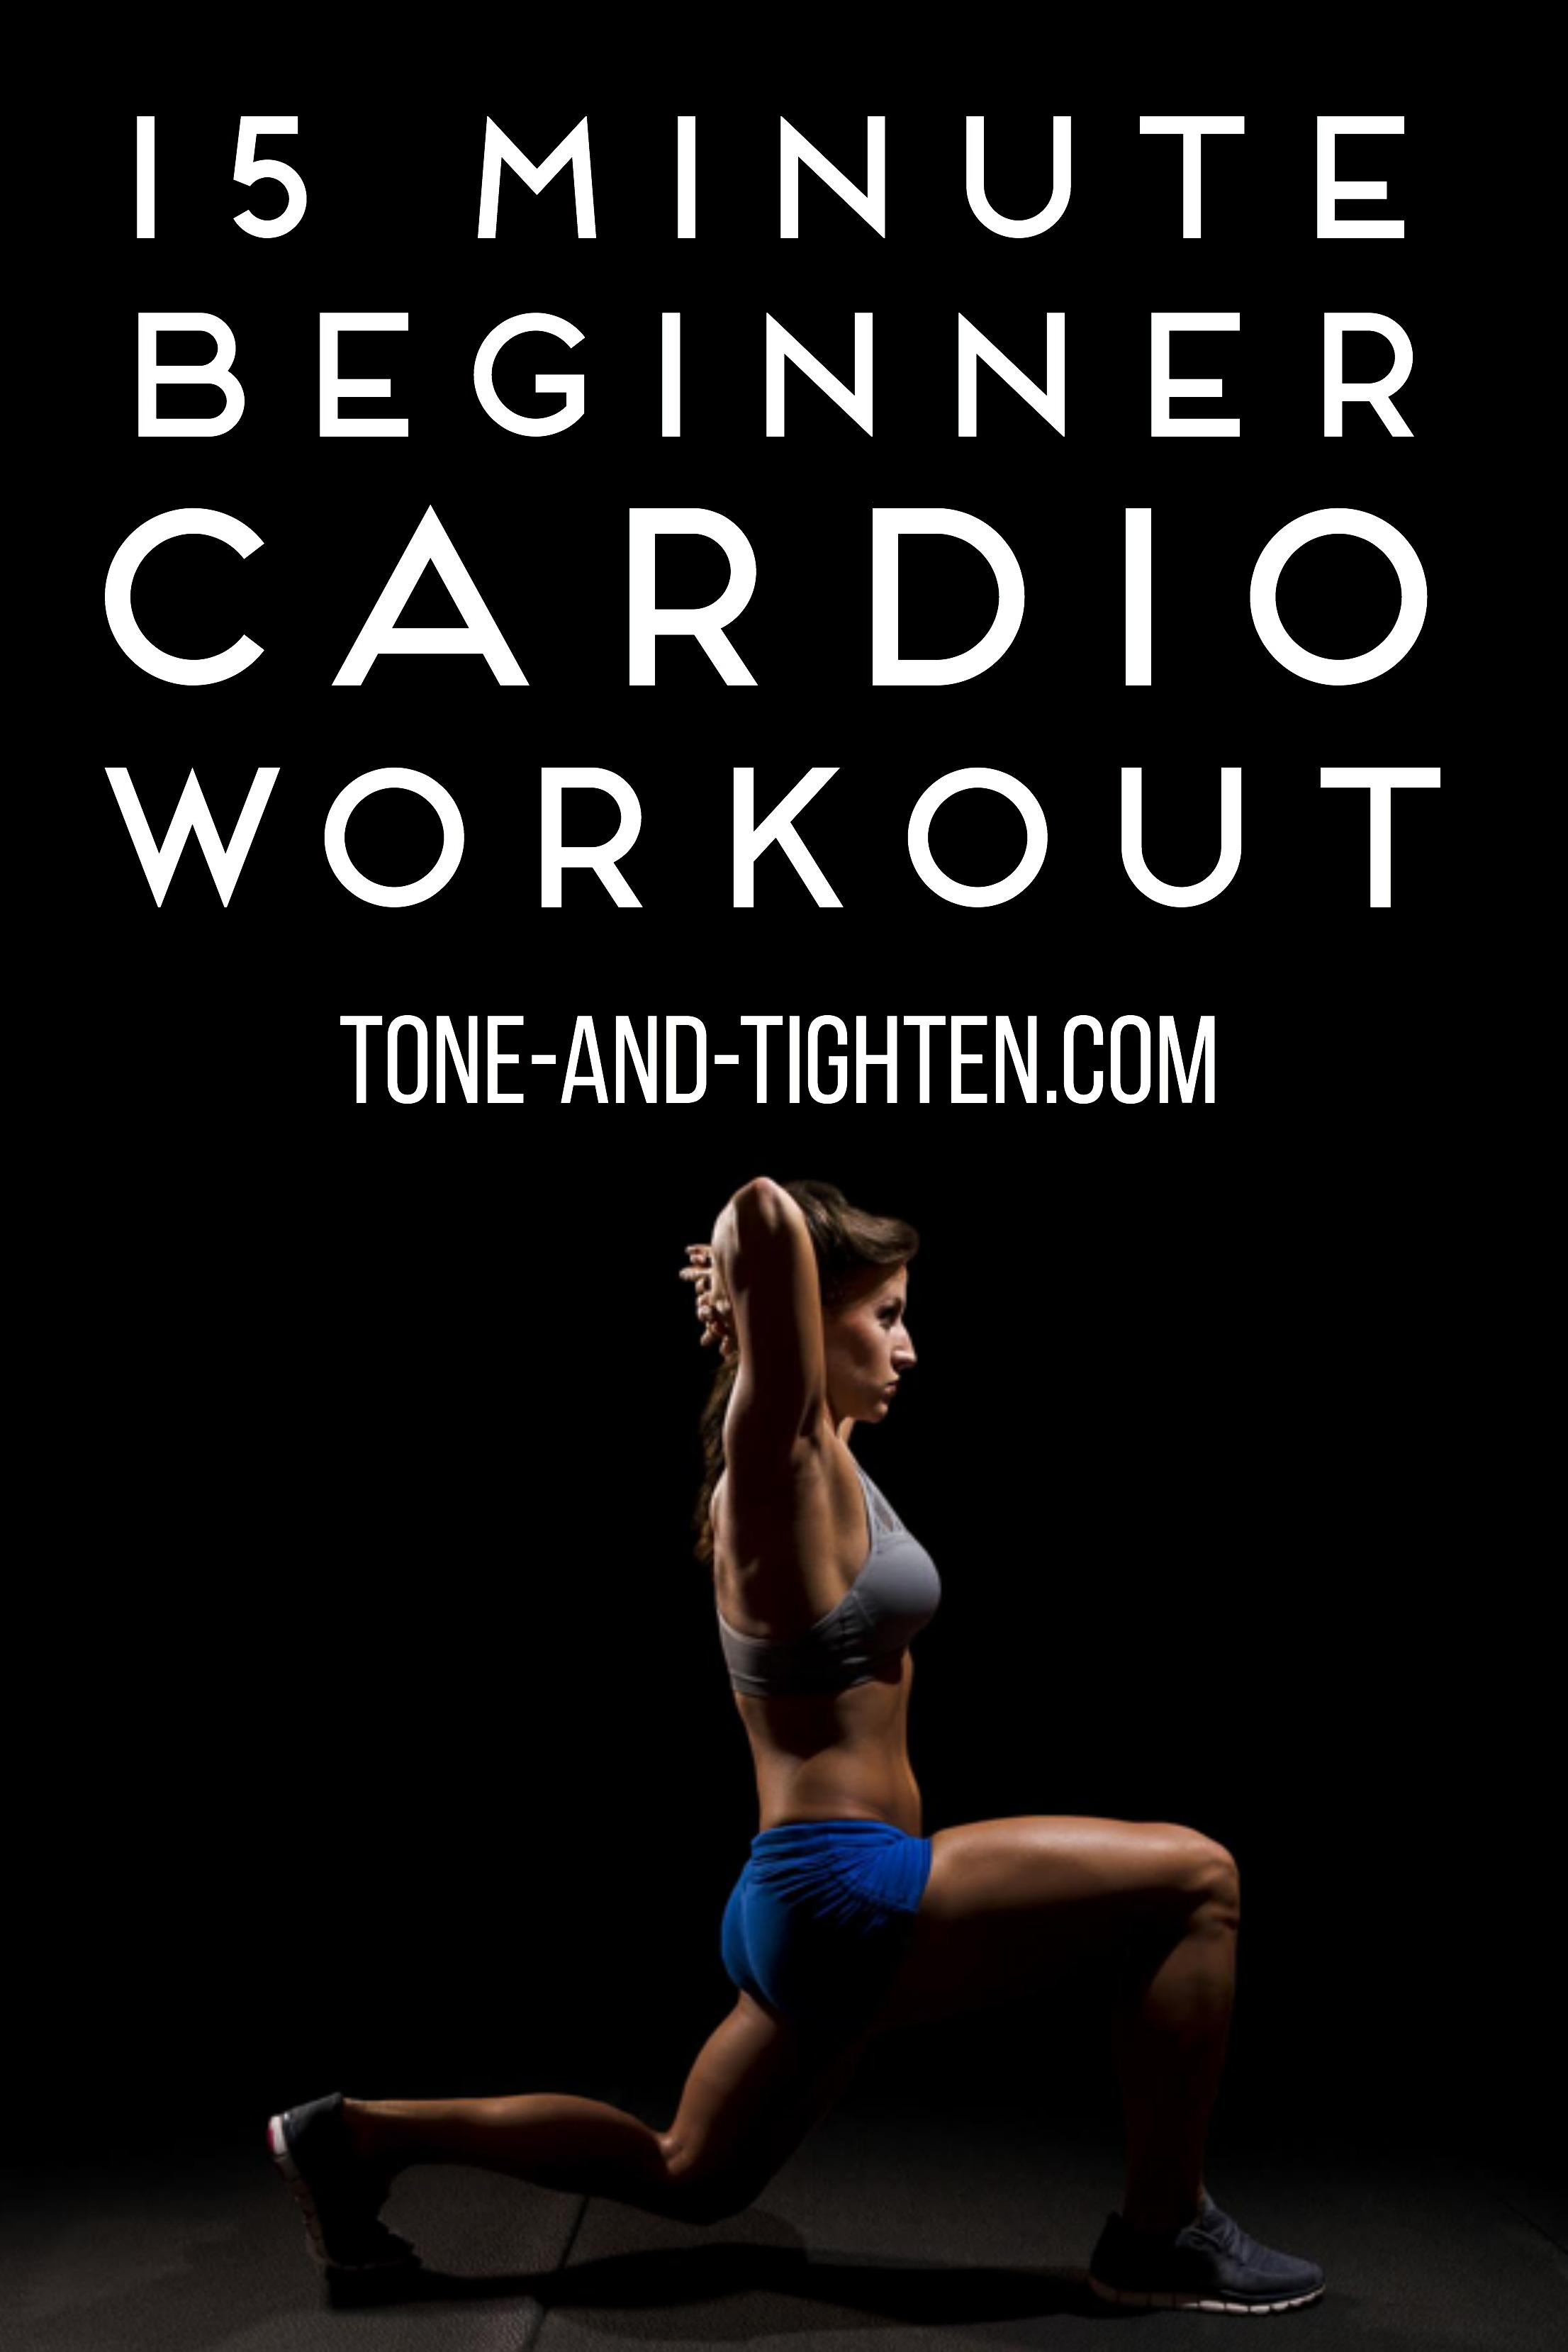 15 Minute Beginners Cardio Workout Tone And Tighten